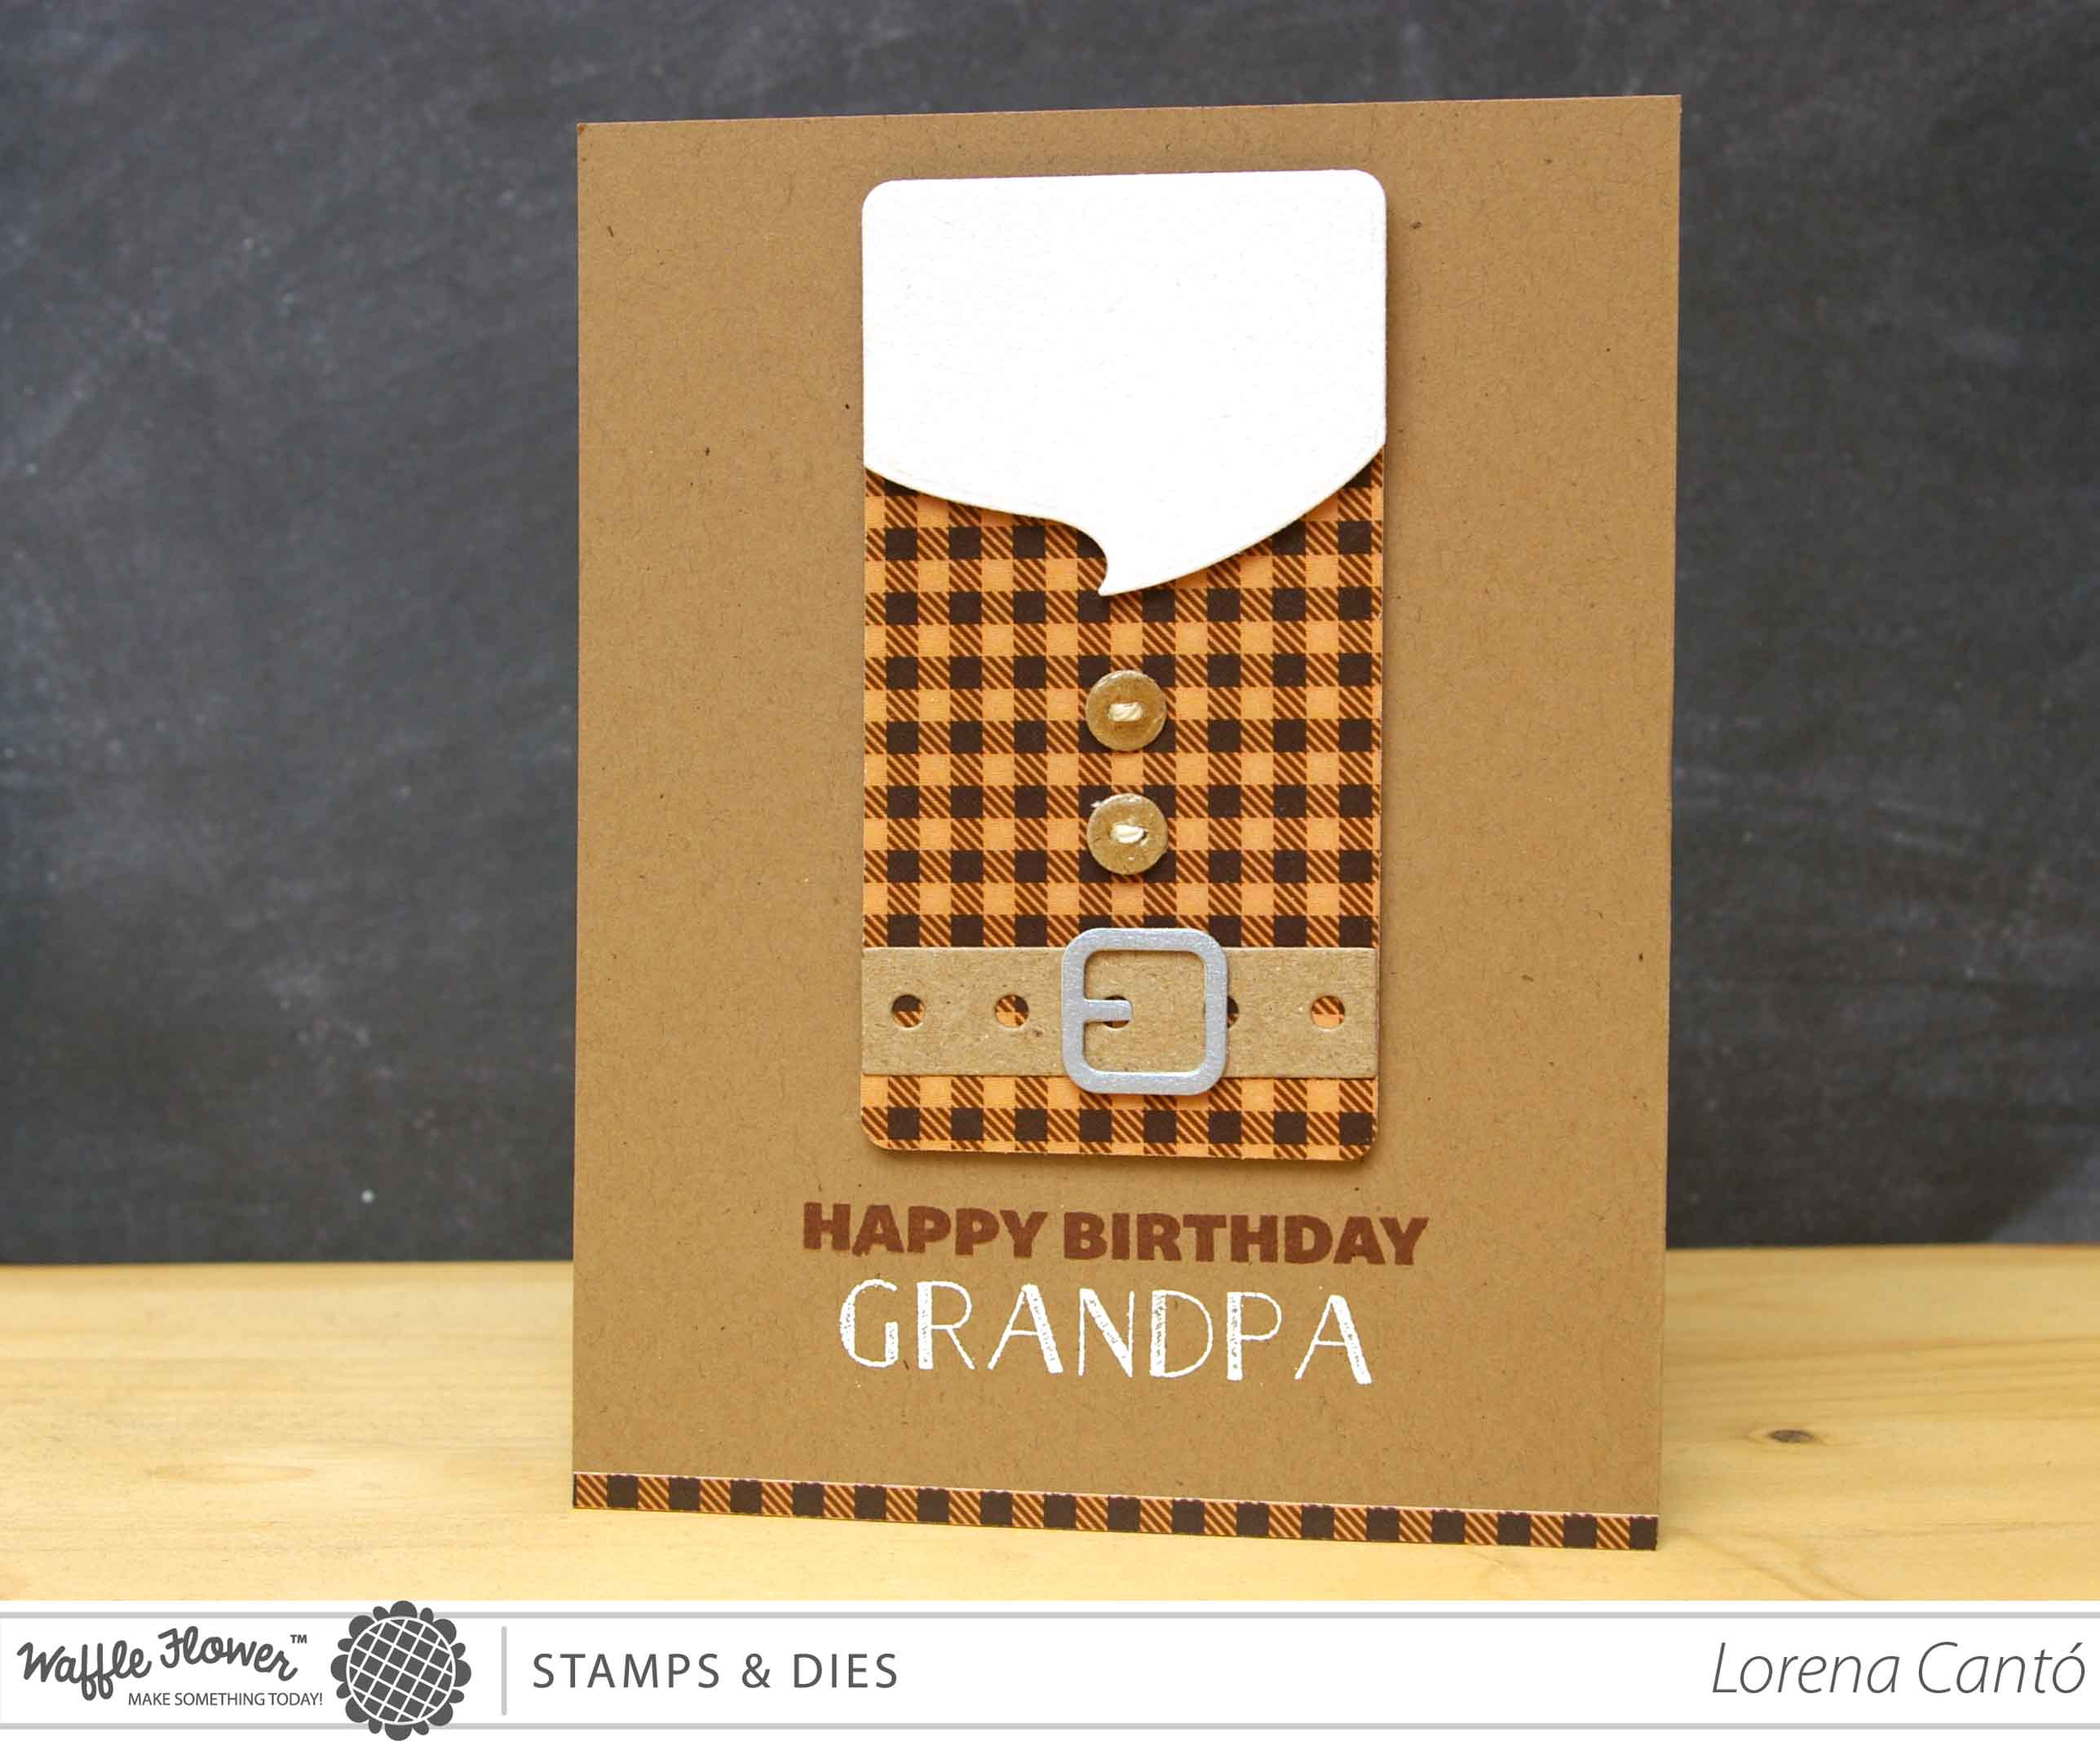 Grandpa birthday card with waffle flower crafts and a winner grandpa1 grandad birthday card bookmarktalkfo Gallery